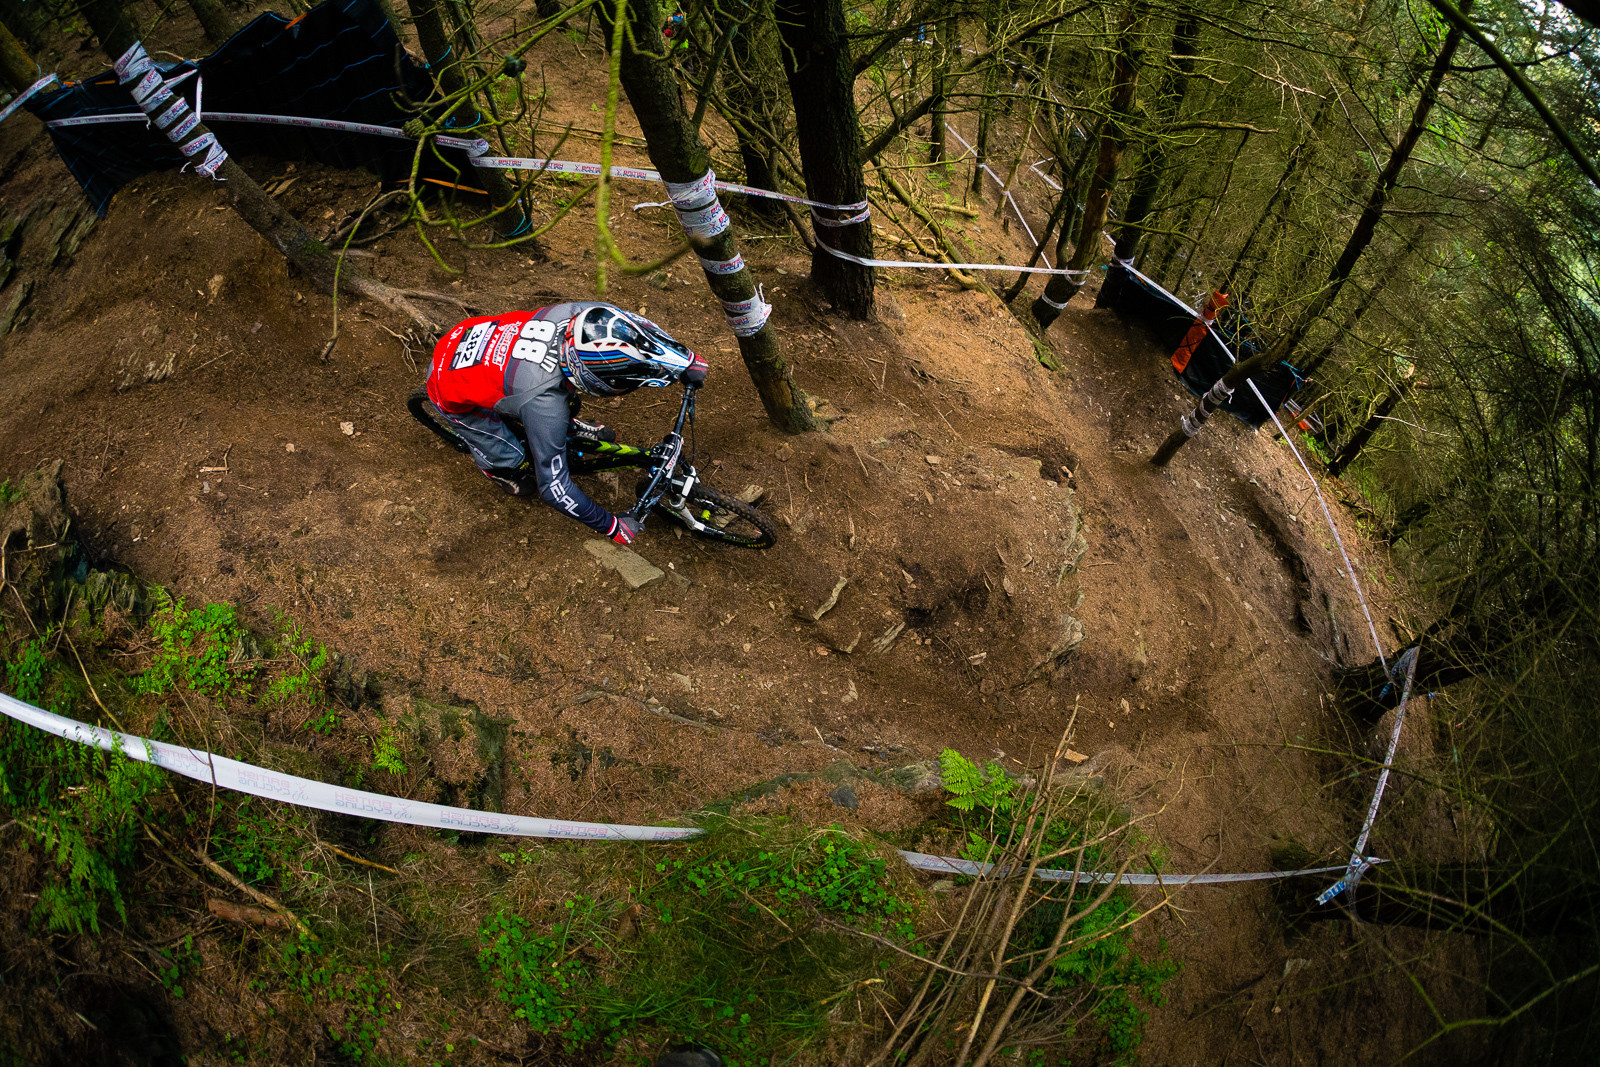 Jake Martin, British Downhill Series, Llangollen - RACE REPORT - British Downhill Series Llangollen - Mountain Biking Pictures - Vital MTB